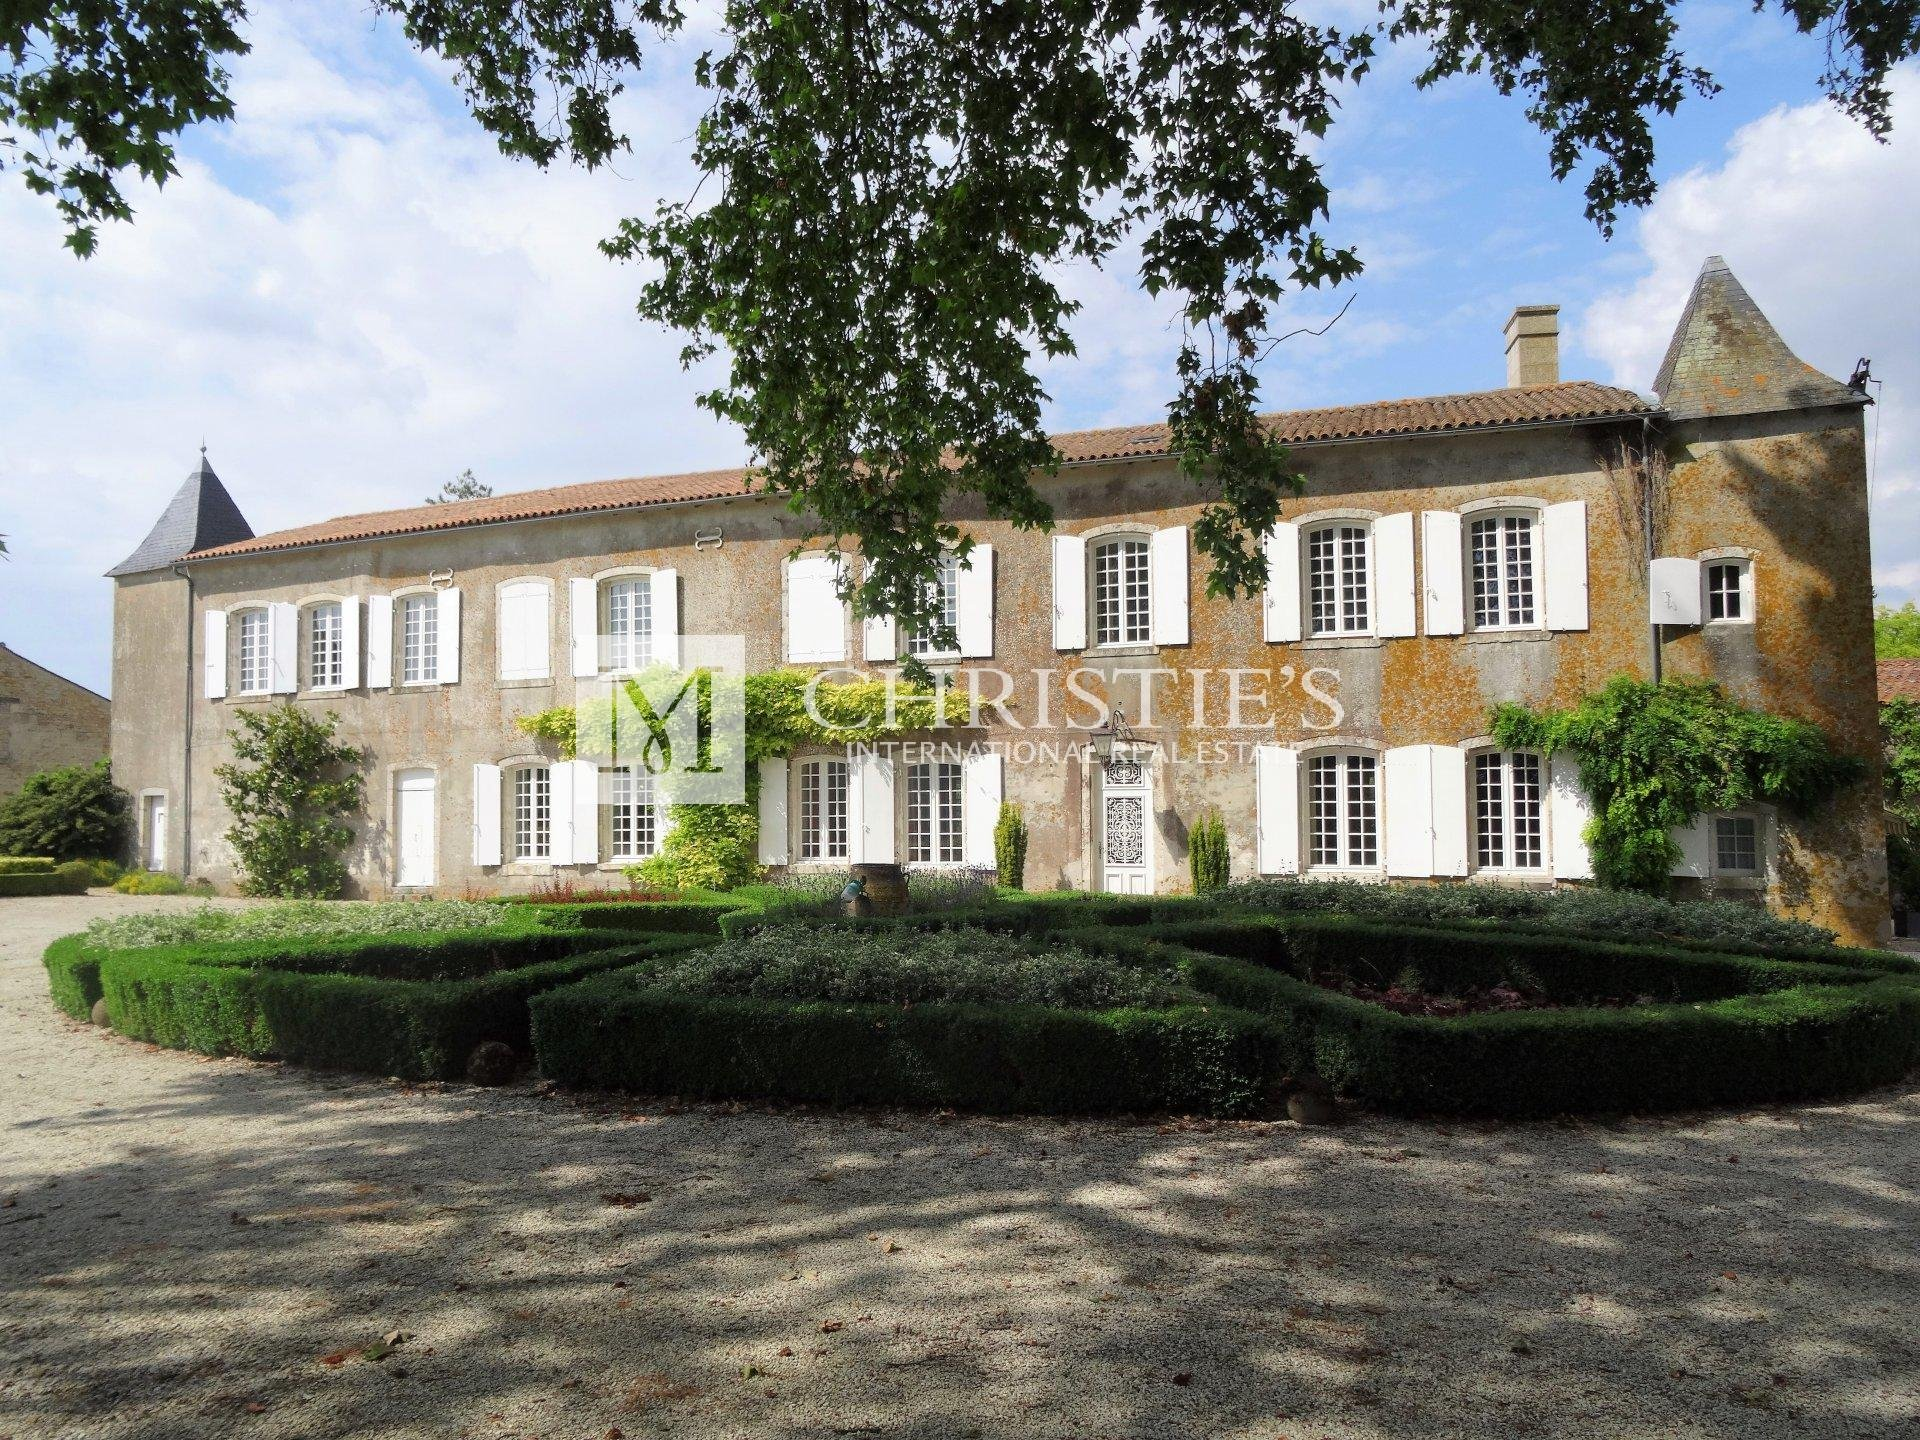 Magnifident 18th century manor house in wonderful setting